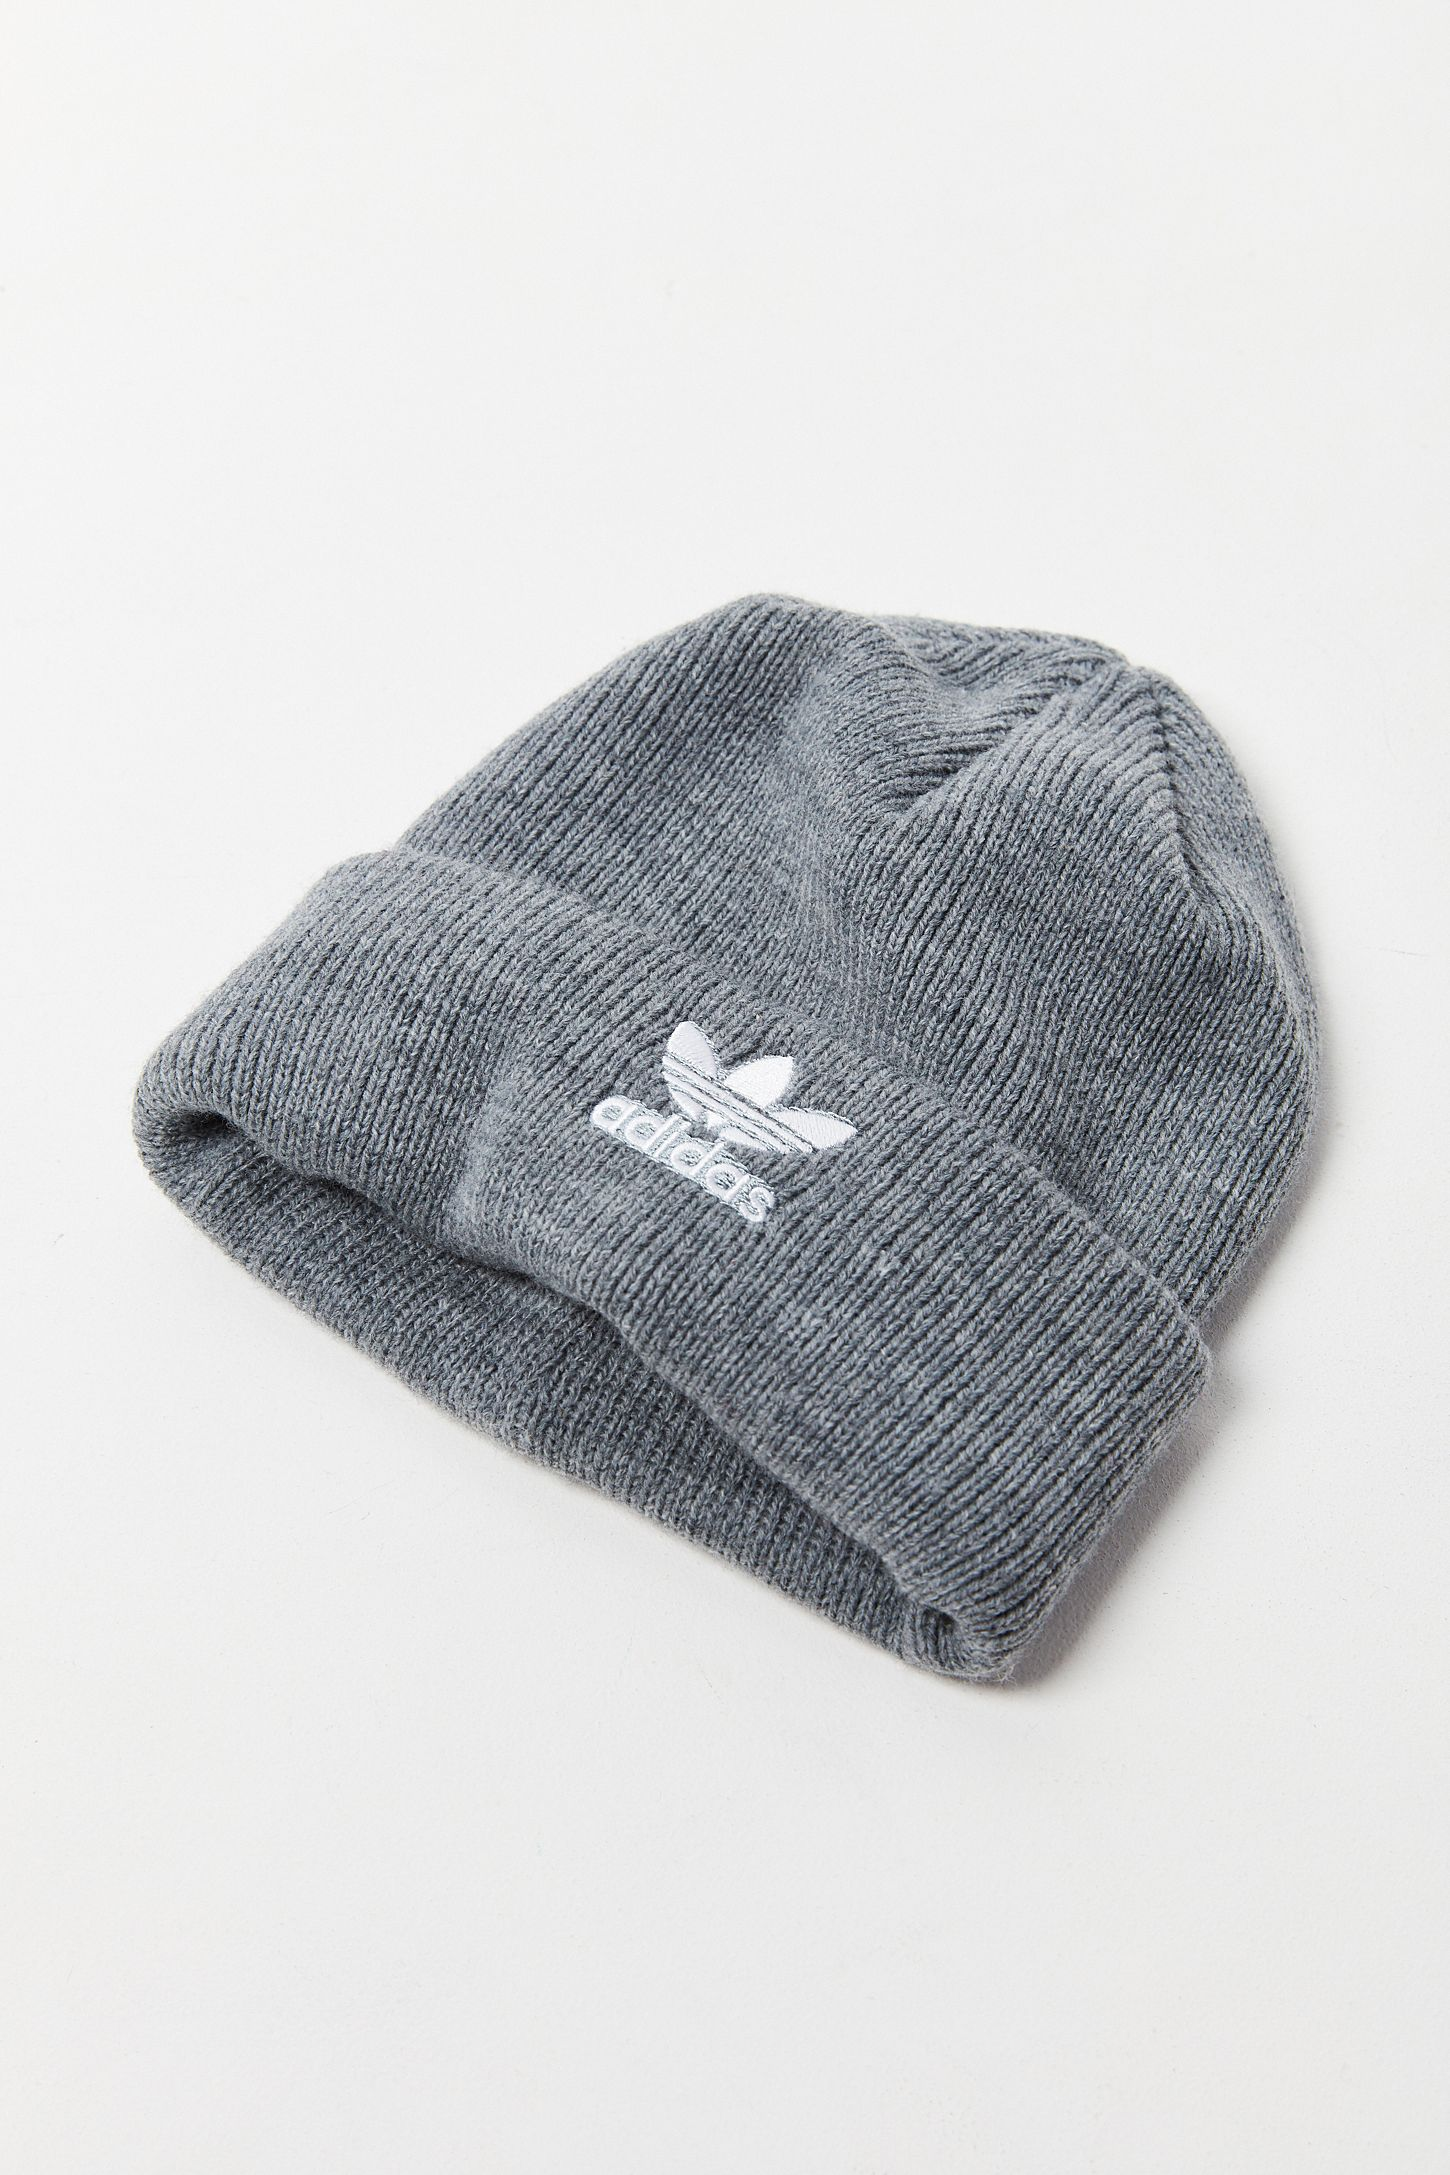 ef83748672171 adidas Originals Trefoil II Knit Beanie. Tap image to zoom. Hover to zoom.  Double Tap to Zoom